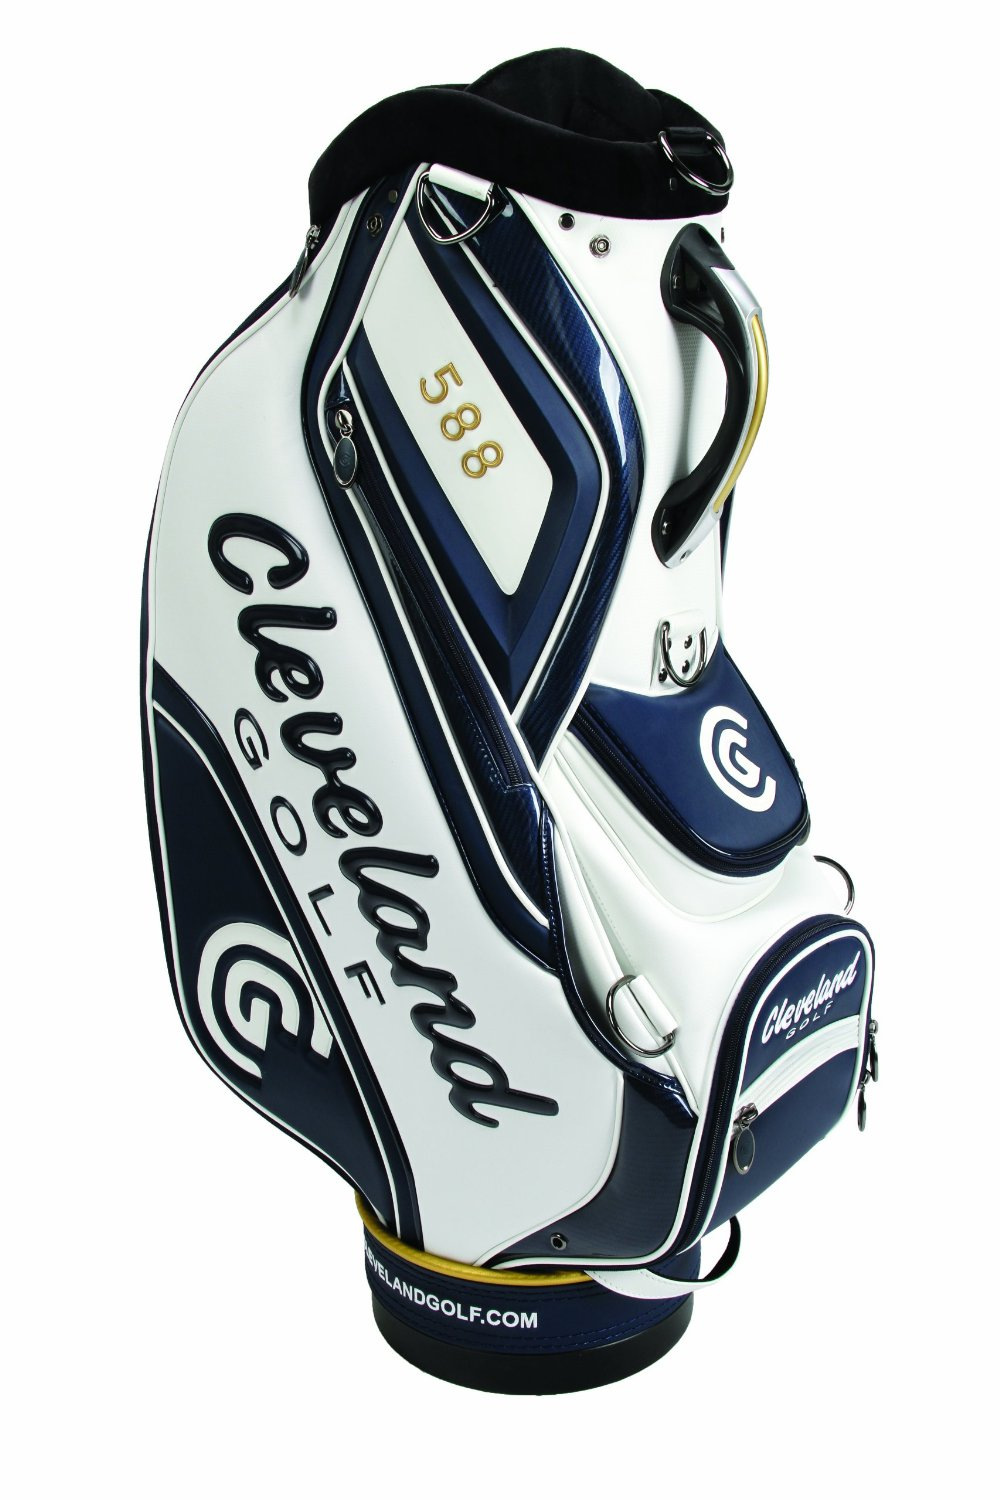 Mens Cleveland Golf Staff Bags